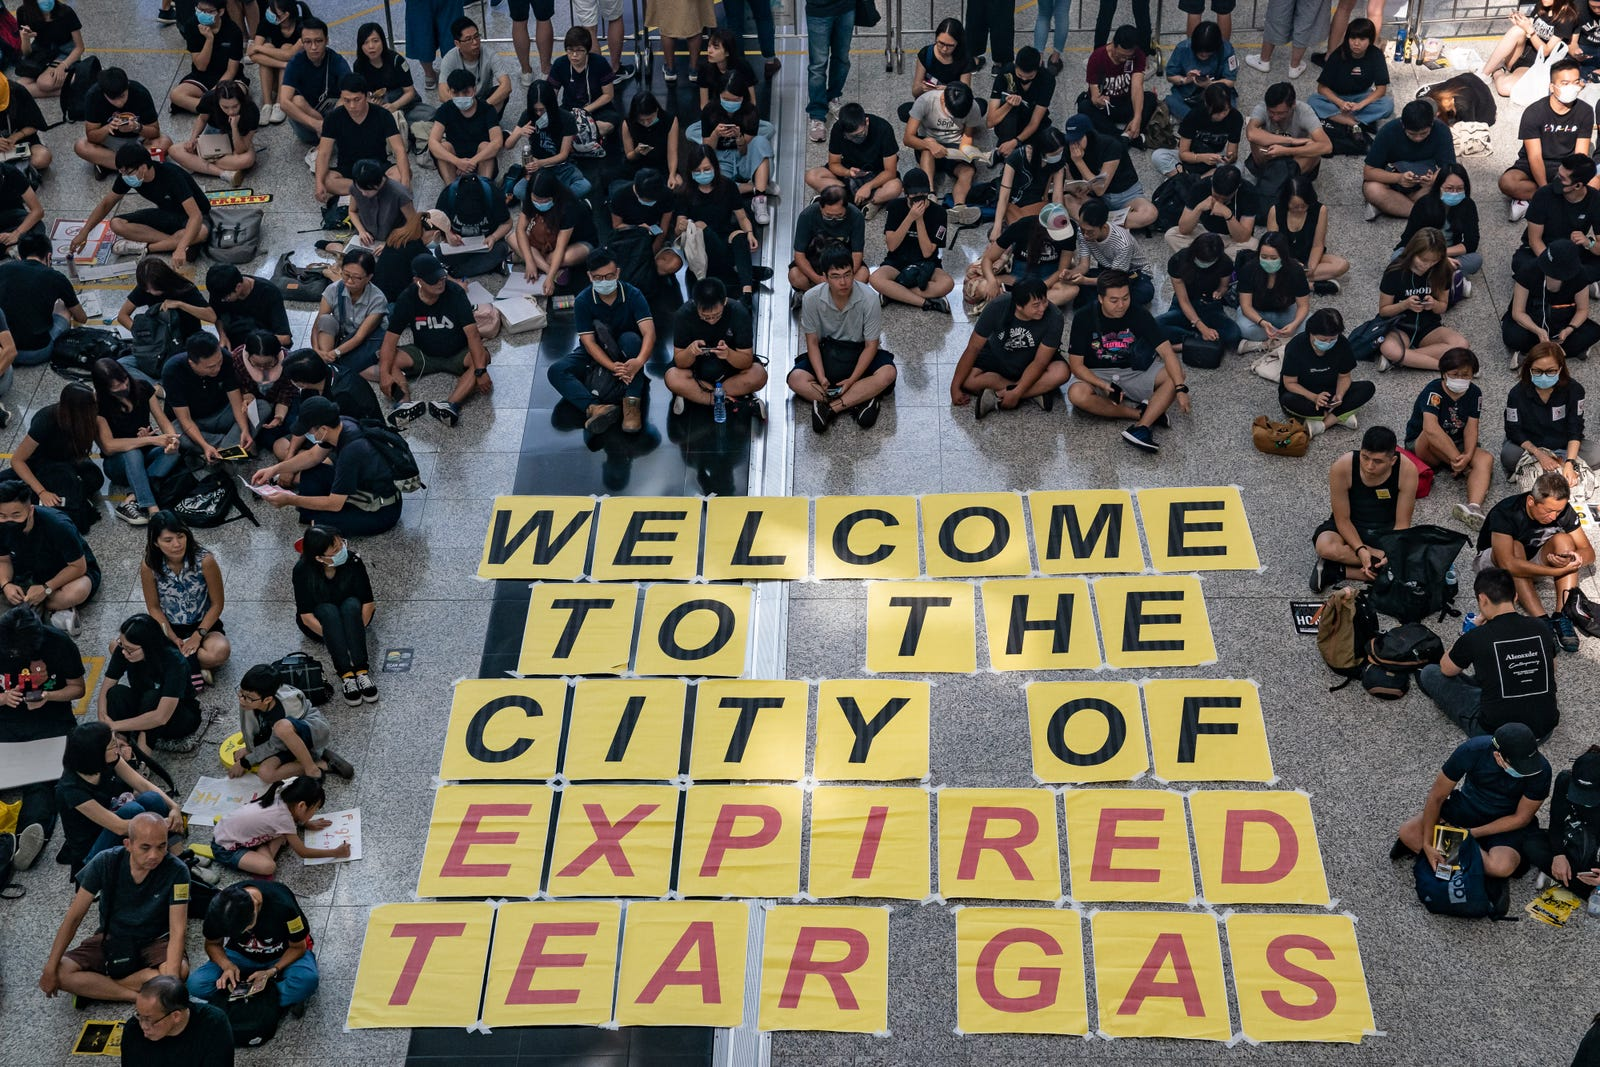 Protesters occupy the arrival hall of the Hong Kong International Airport during a demonstration on August 11, 2019 in Hong Kong, China.